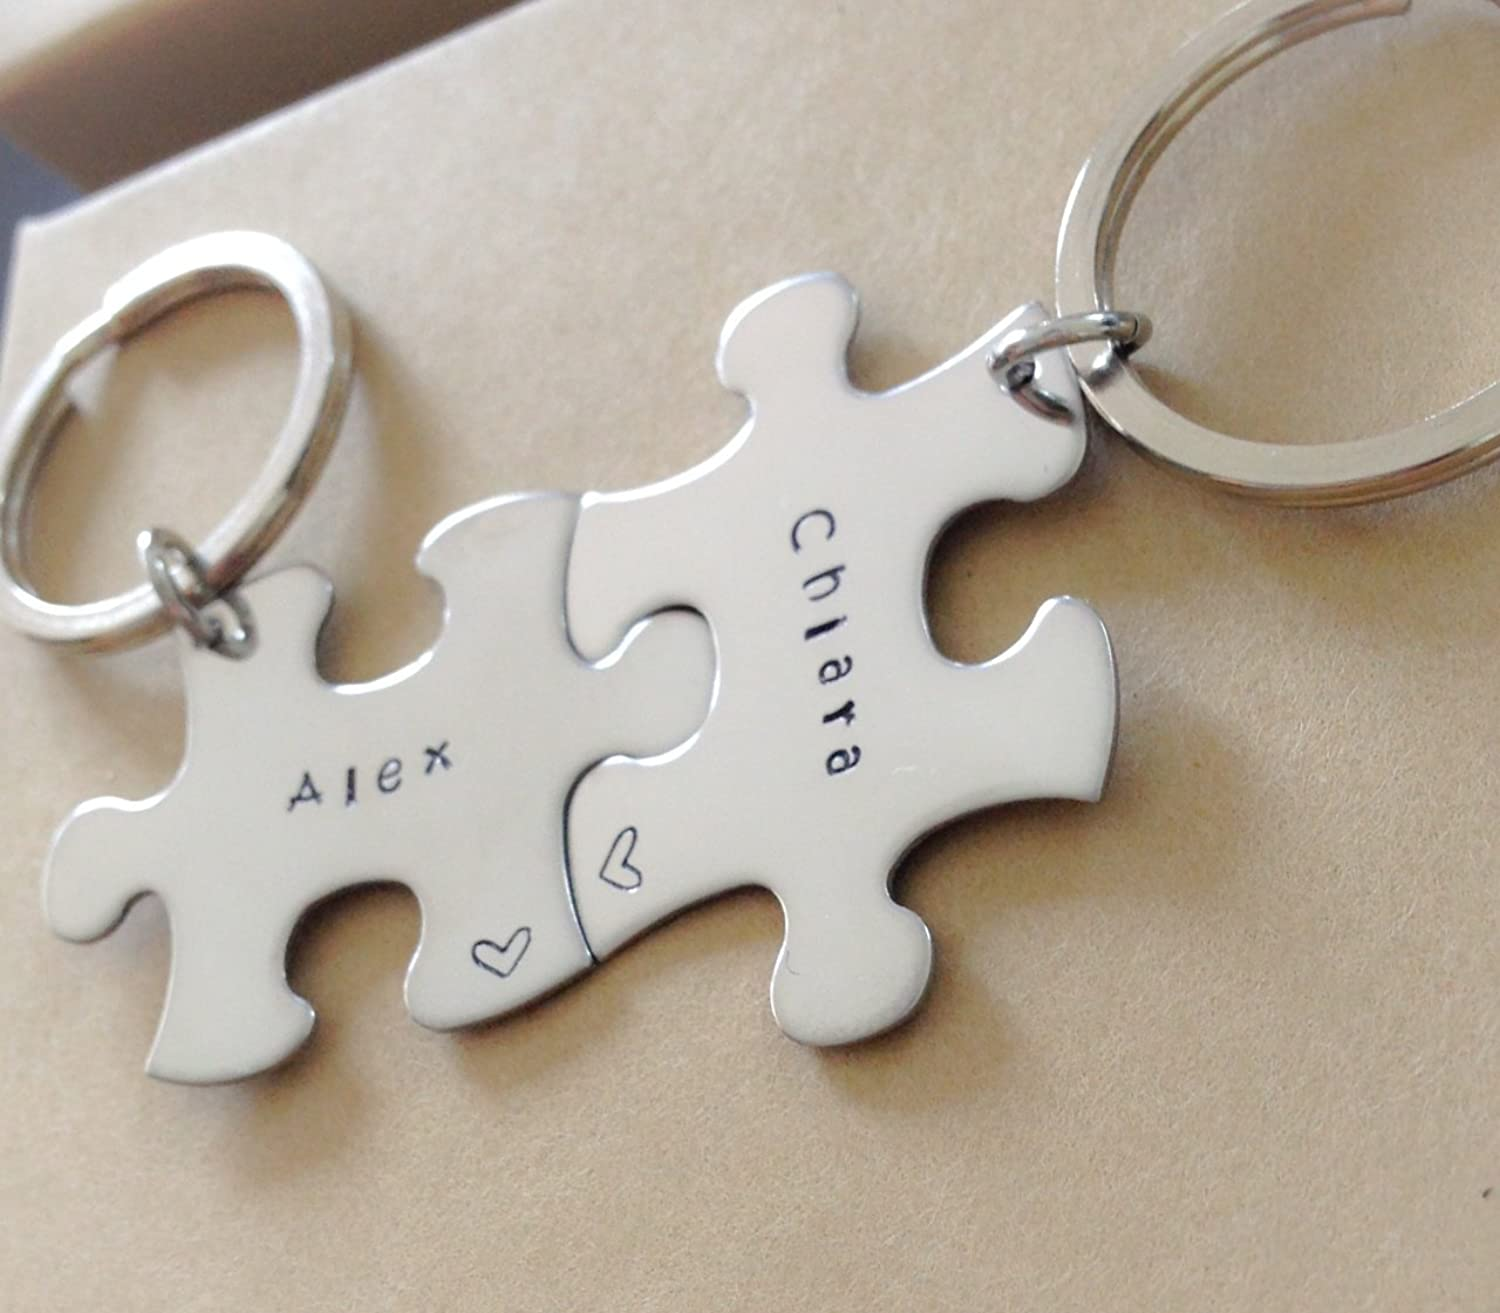 Amazon.com: Personalized Key chain - Key chain puzzle piece ...